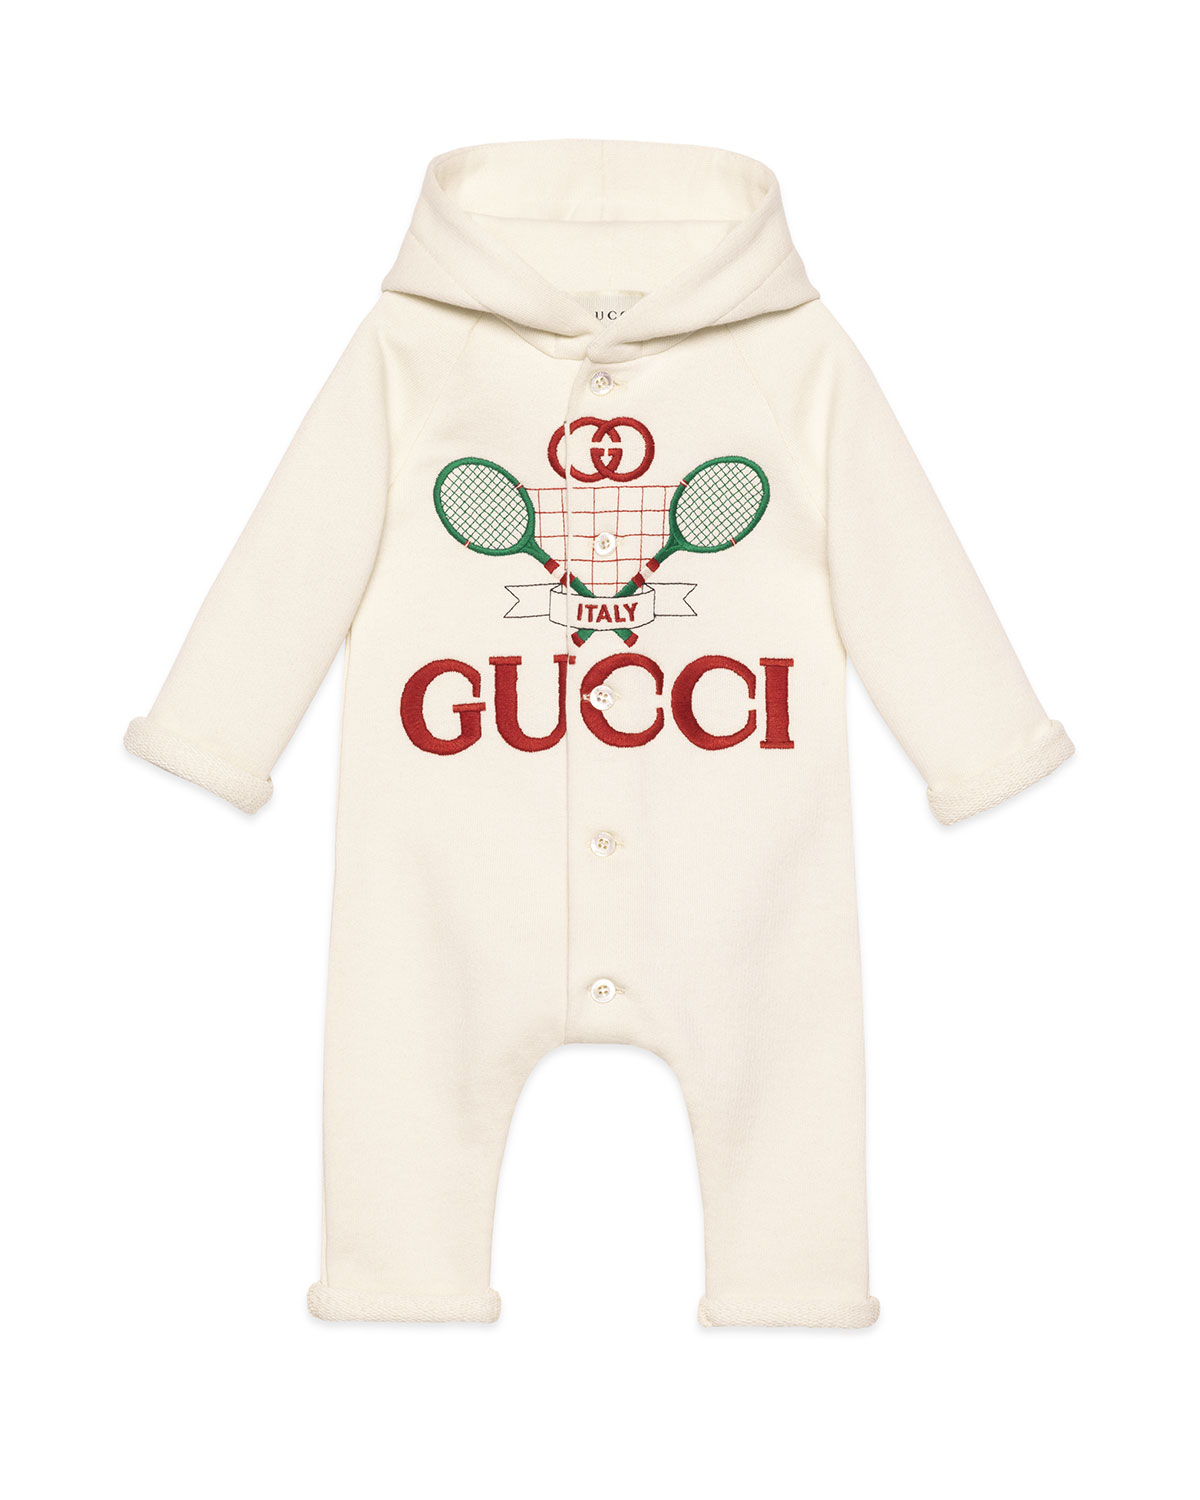 Gucci Racket Logo Embroidered Hooded Coverall, Size 3-24 Months